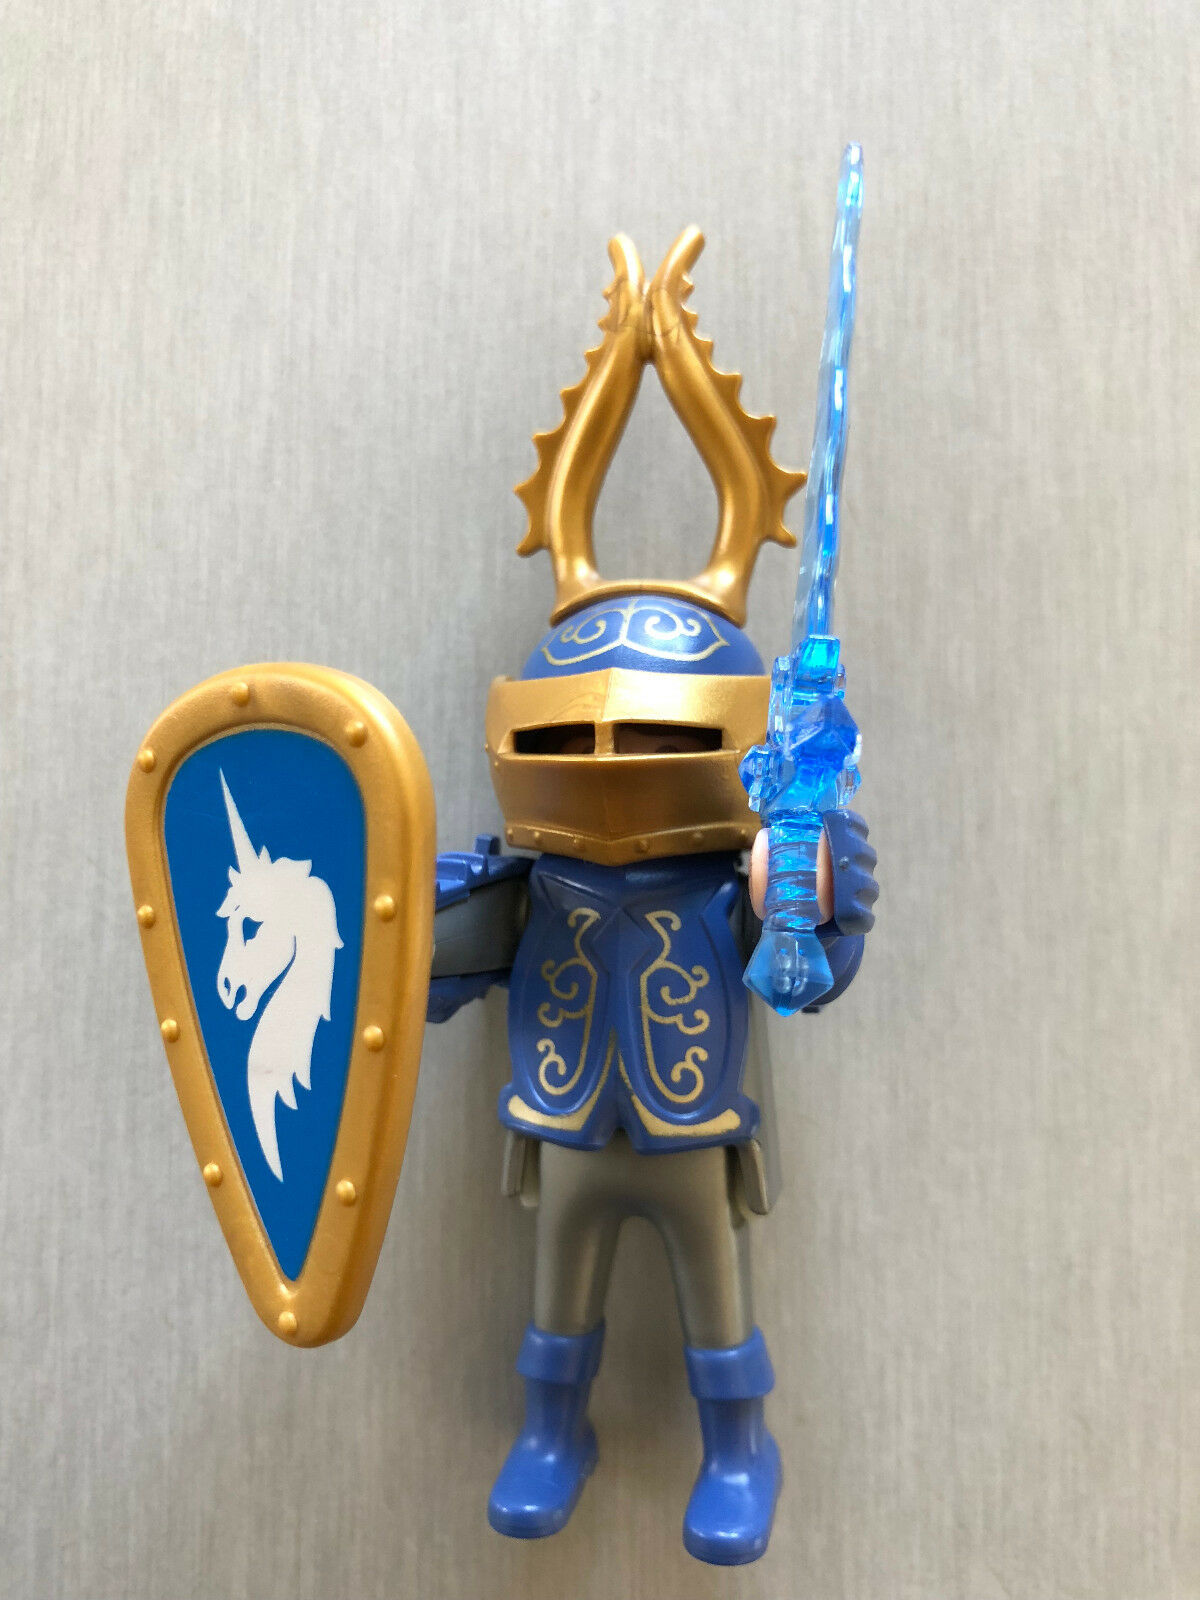 Playmobil 3977 RARE COLLECTOR - Chevalier de la licorne - knight